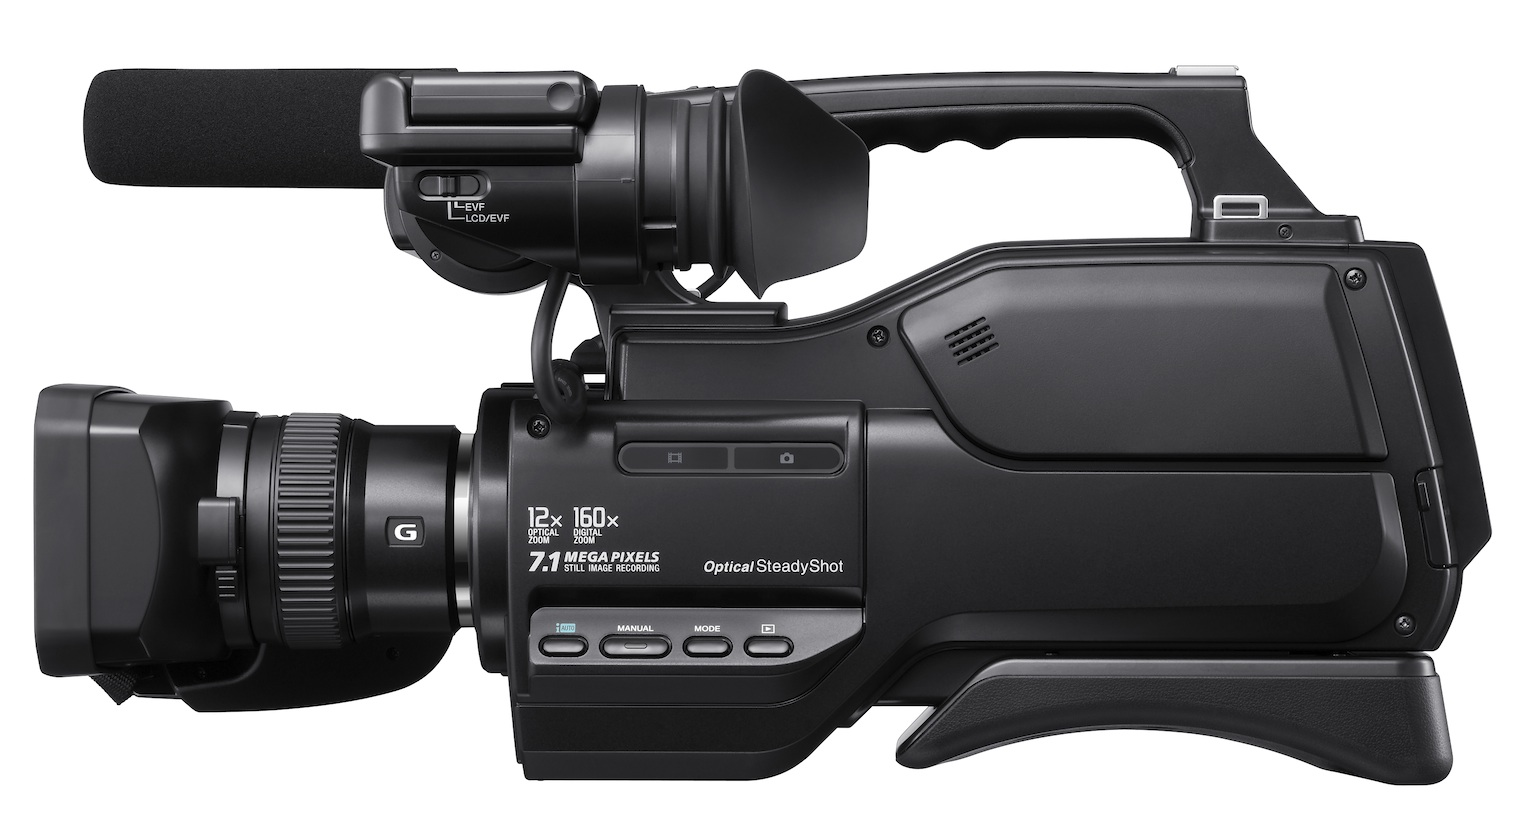 sony mnc Sony mhc-gzr8d - check out sony mhc-gzr8d price in india, features,  specifications, seller info, reviews, best price and offers online for sony mhc- gzr8d.